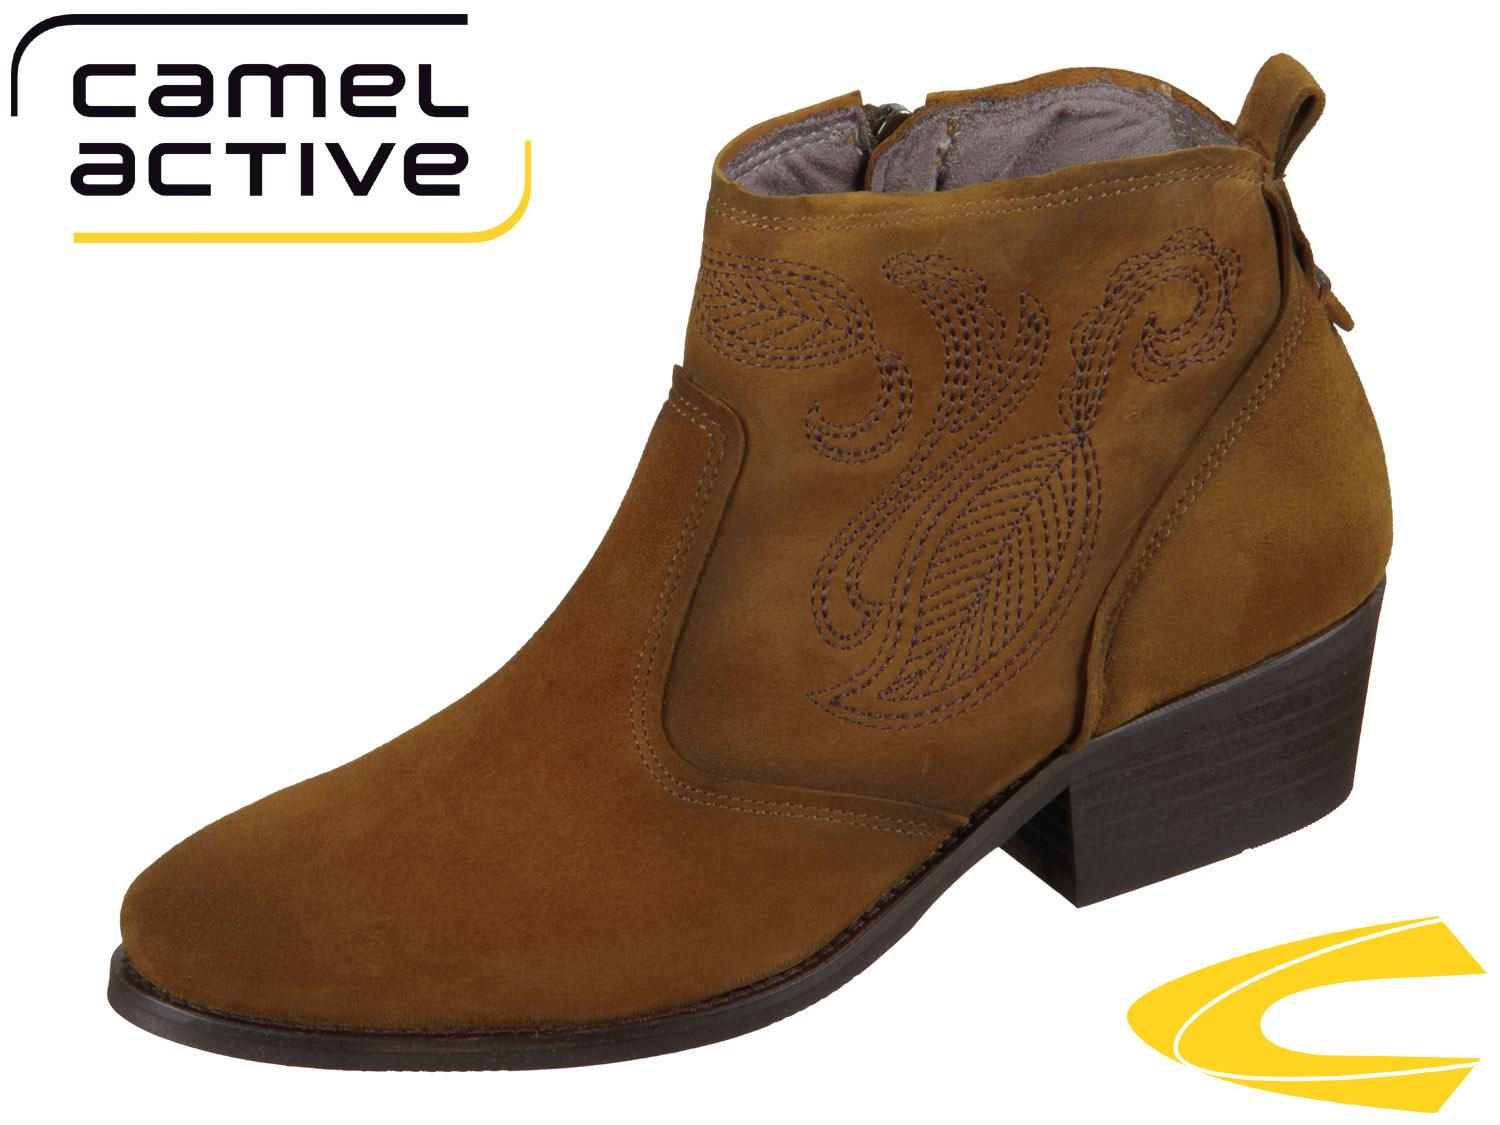 new arrivals aed01 3fc35 camel active Westend 903.70-02 fox Goat Suede